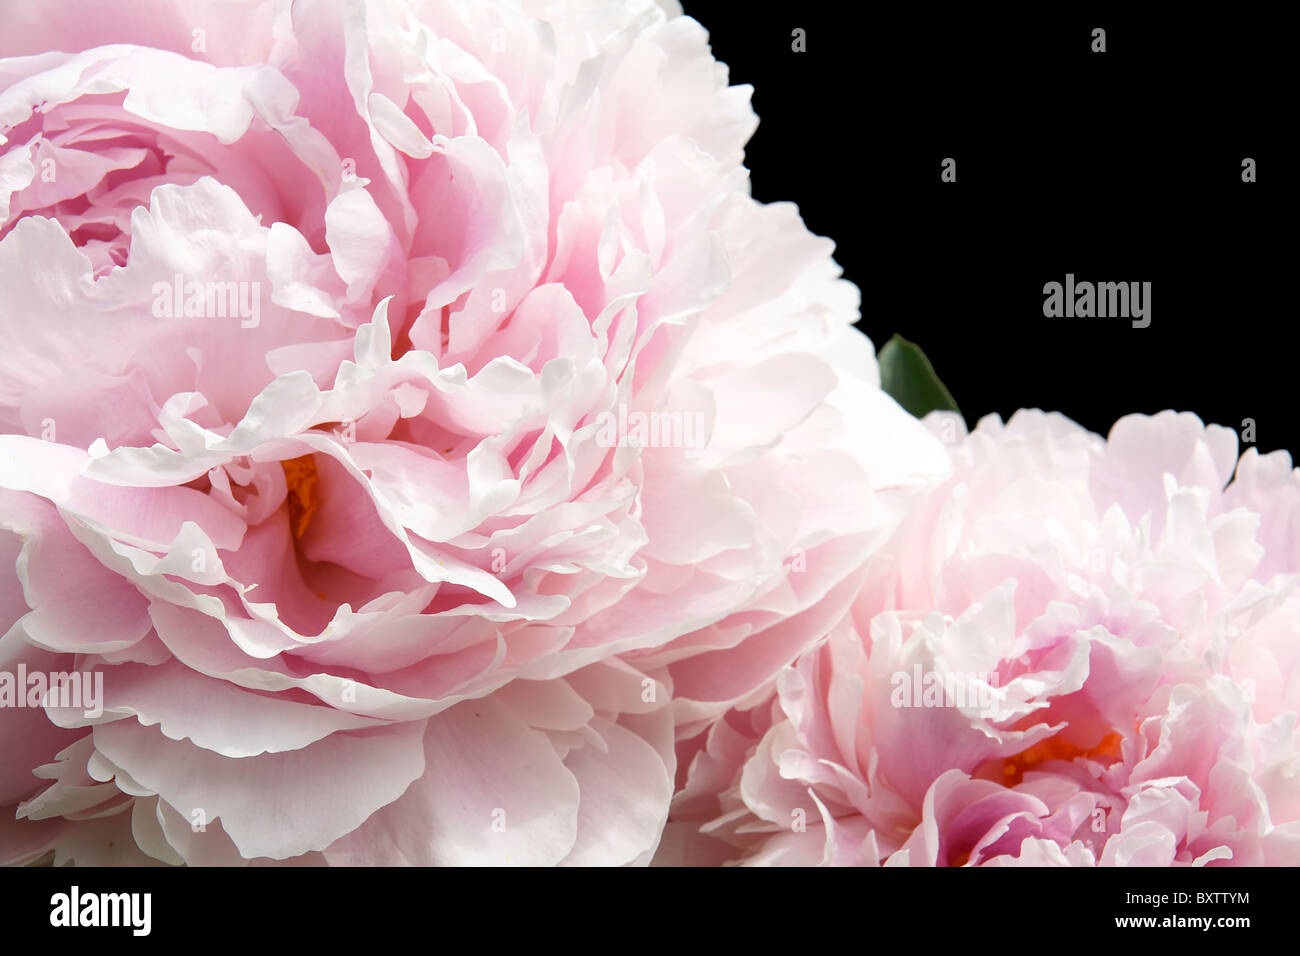 Pale pink flowers (peonies) detail close-up isolated on black. Great floral background with copy space. - Stock Image